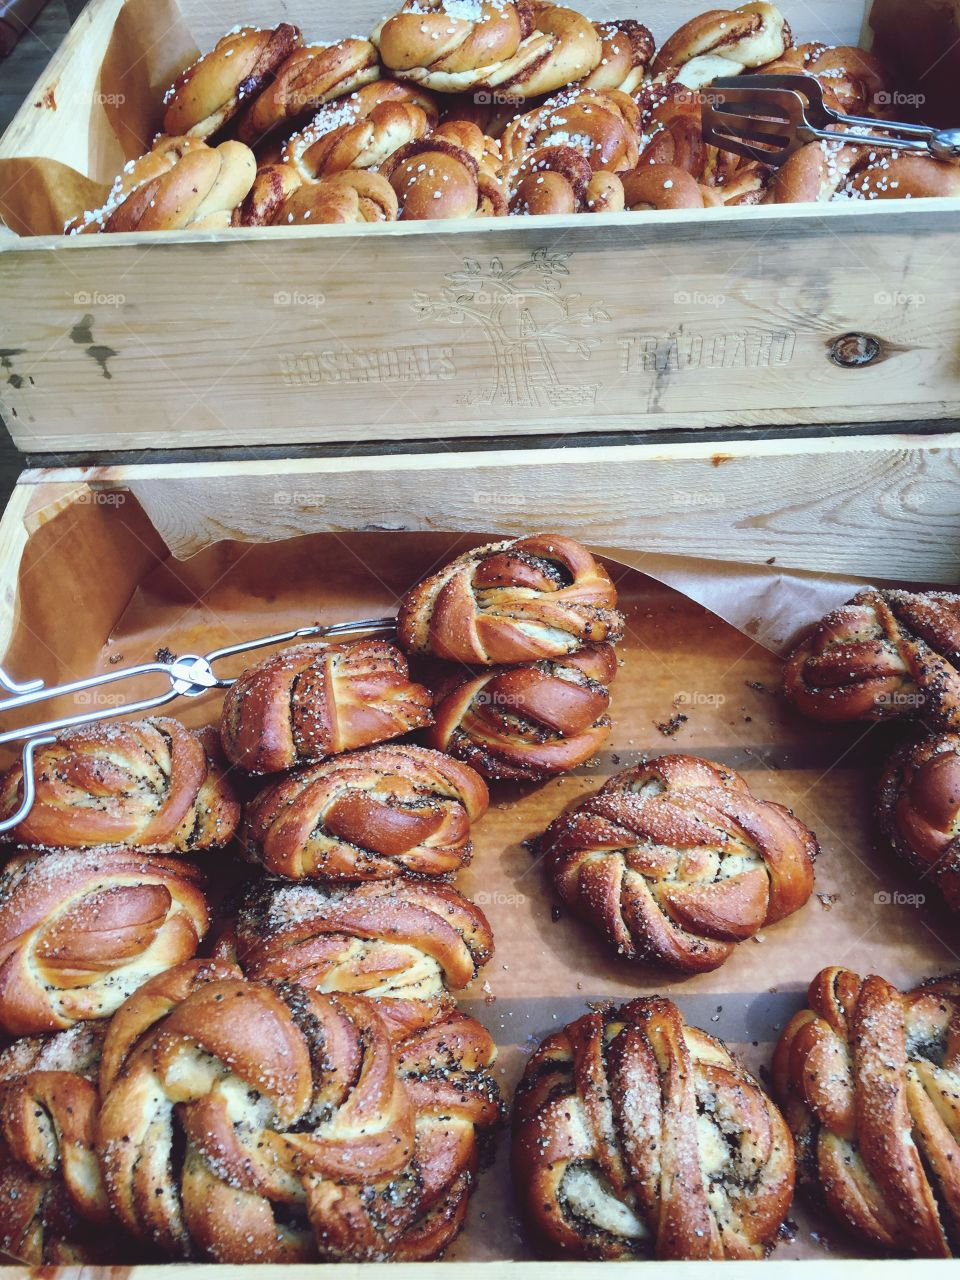 Cinnamon buns in wooden boxes